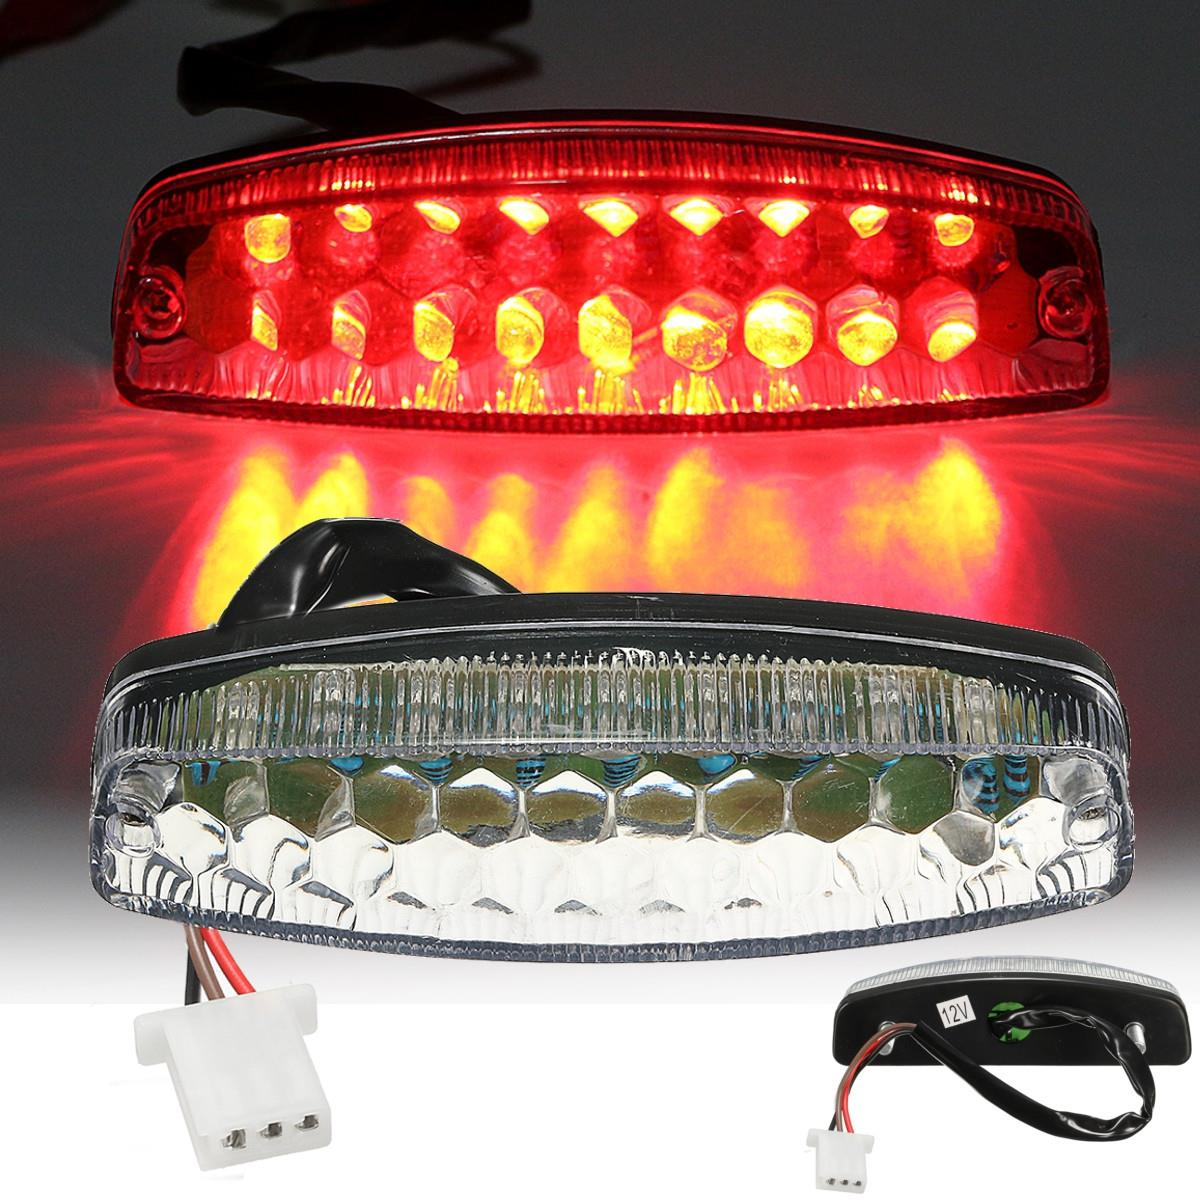 Motorbike Red LED Rear Tail Brake Light For 50 70 110 125cc ATV Quad Kart TaoTao Sunl Chinese Motorcycle Light